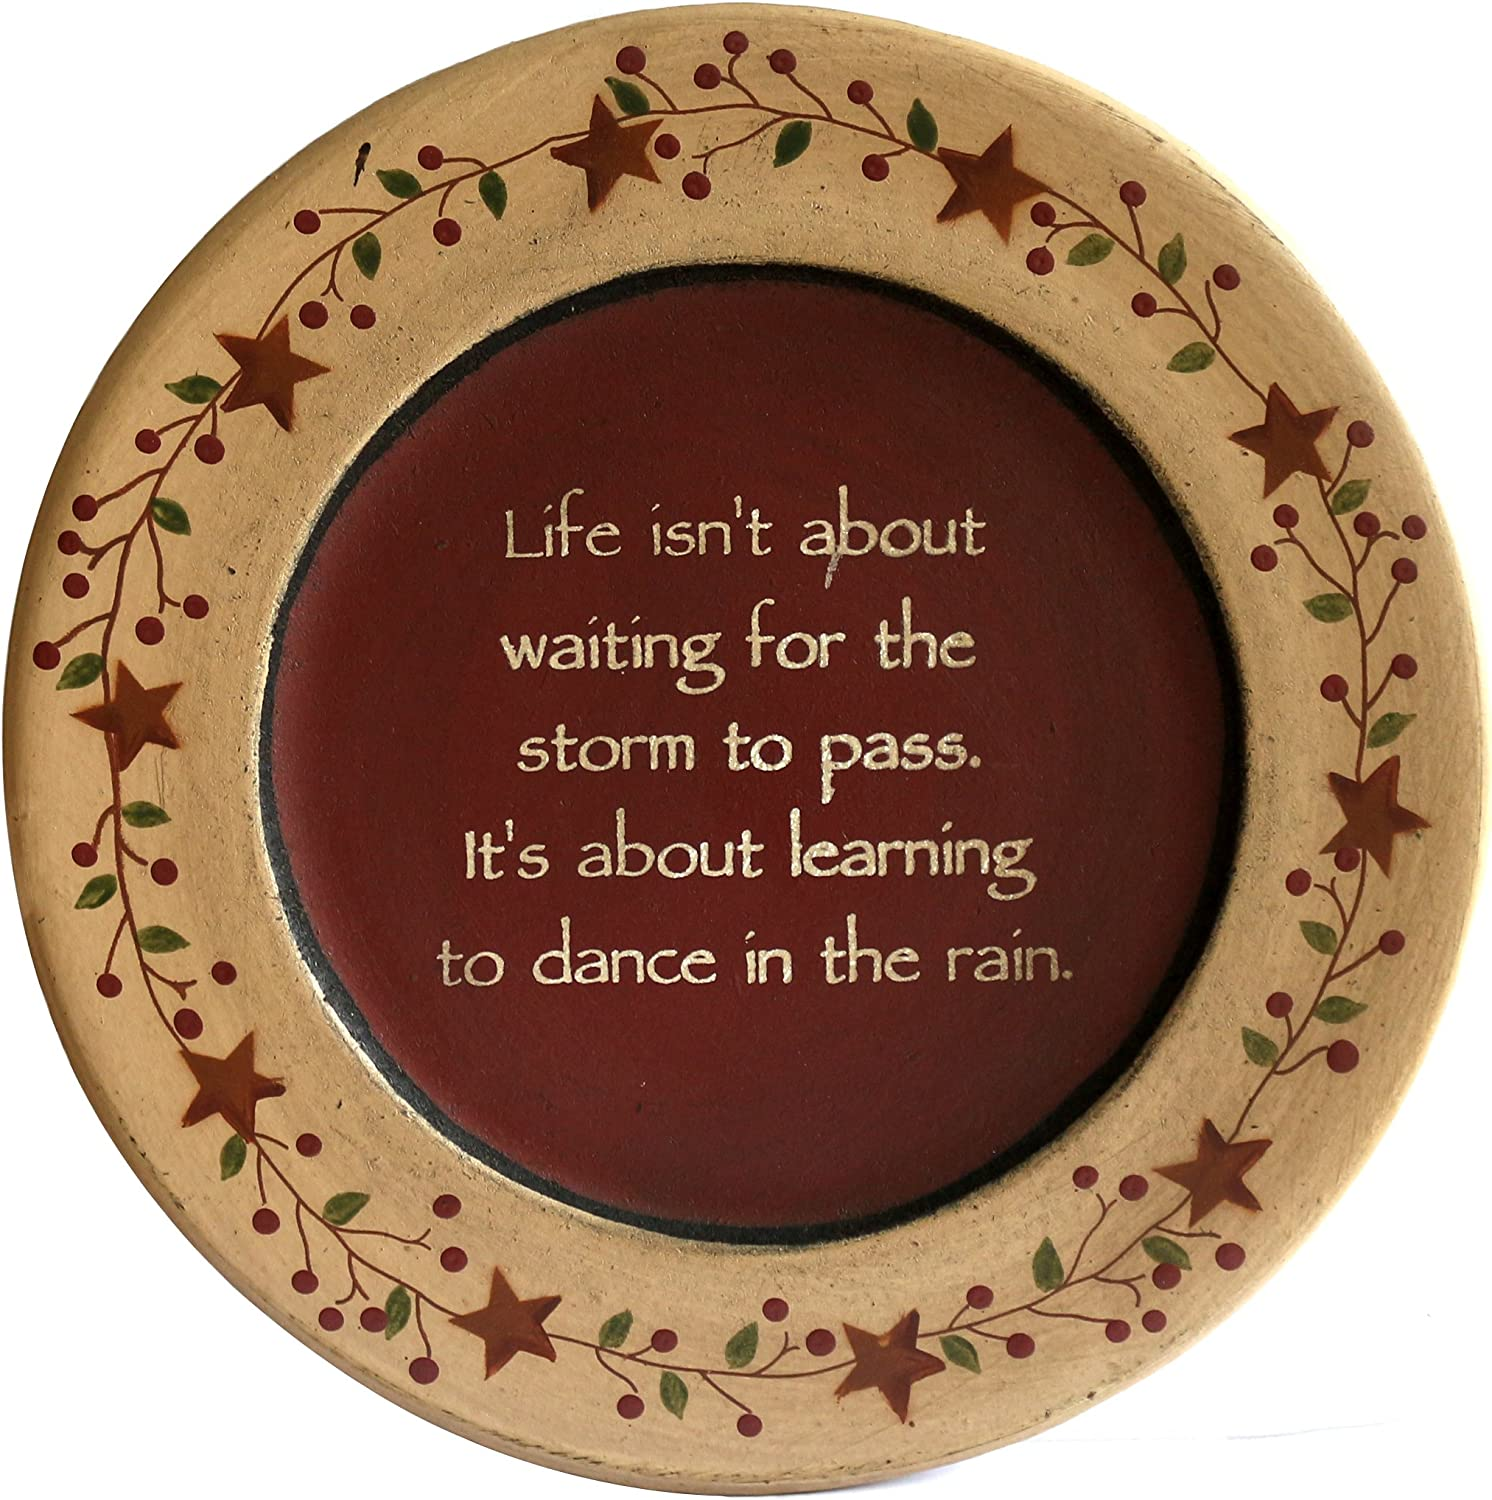 CVHOMEDECO. Primitive Vintage Dance in The Rain Wood Decorative Plate Display Wooden Plate Home Décor Art, 9-3/4 Inch